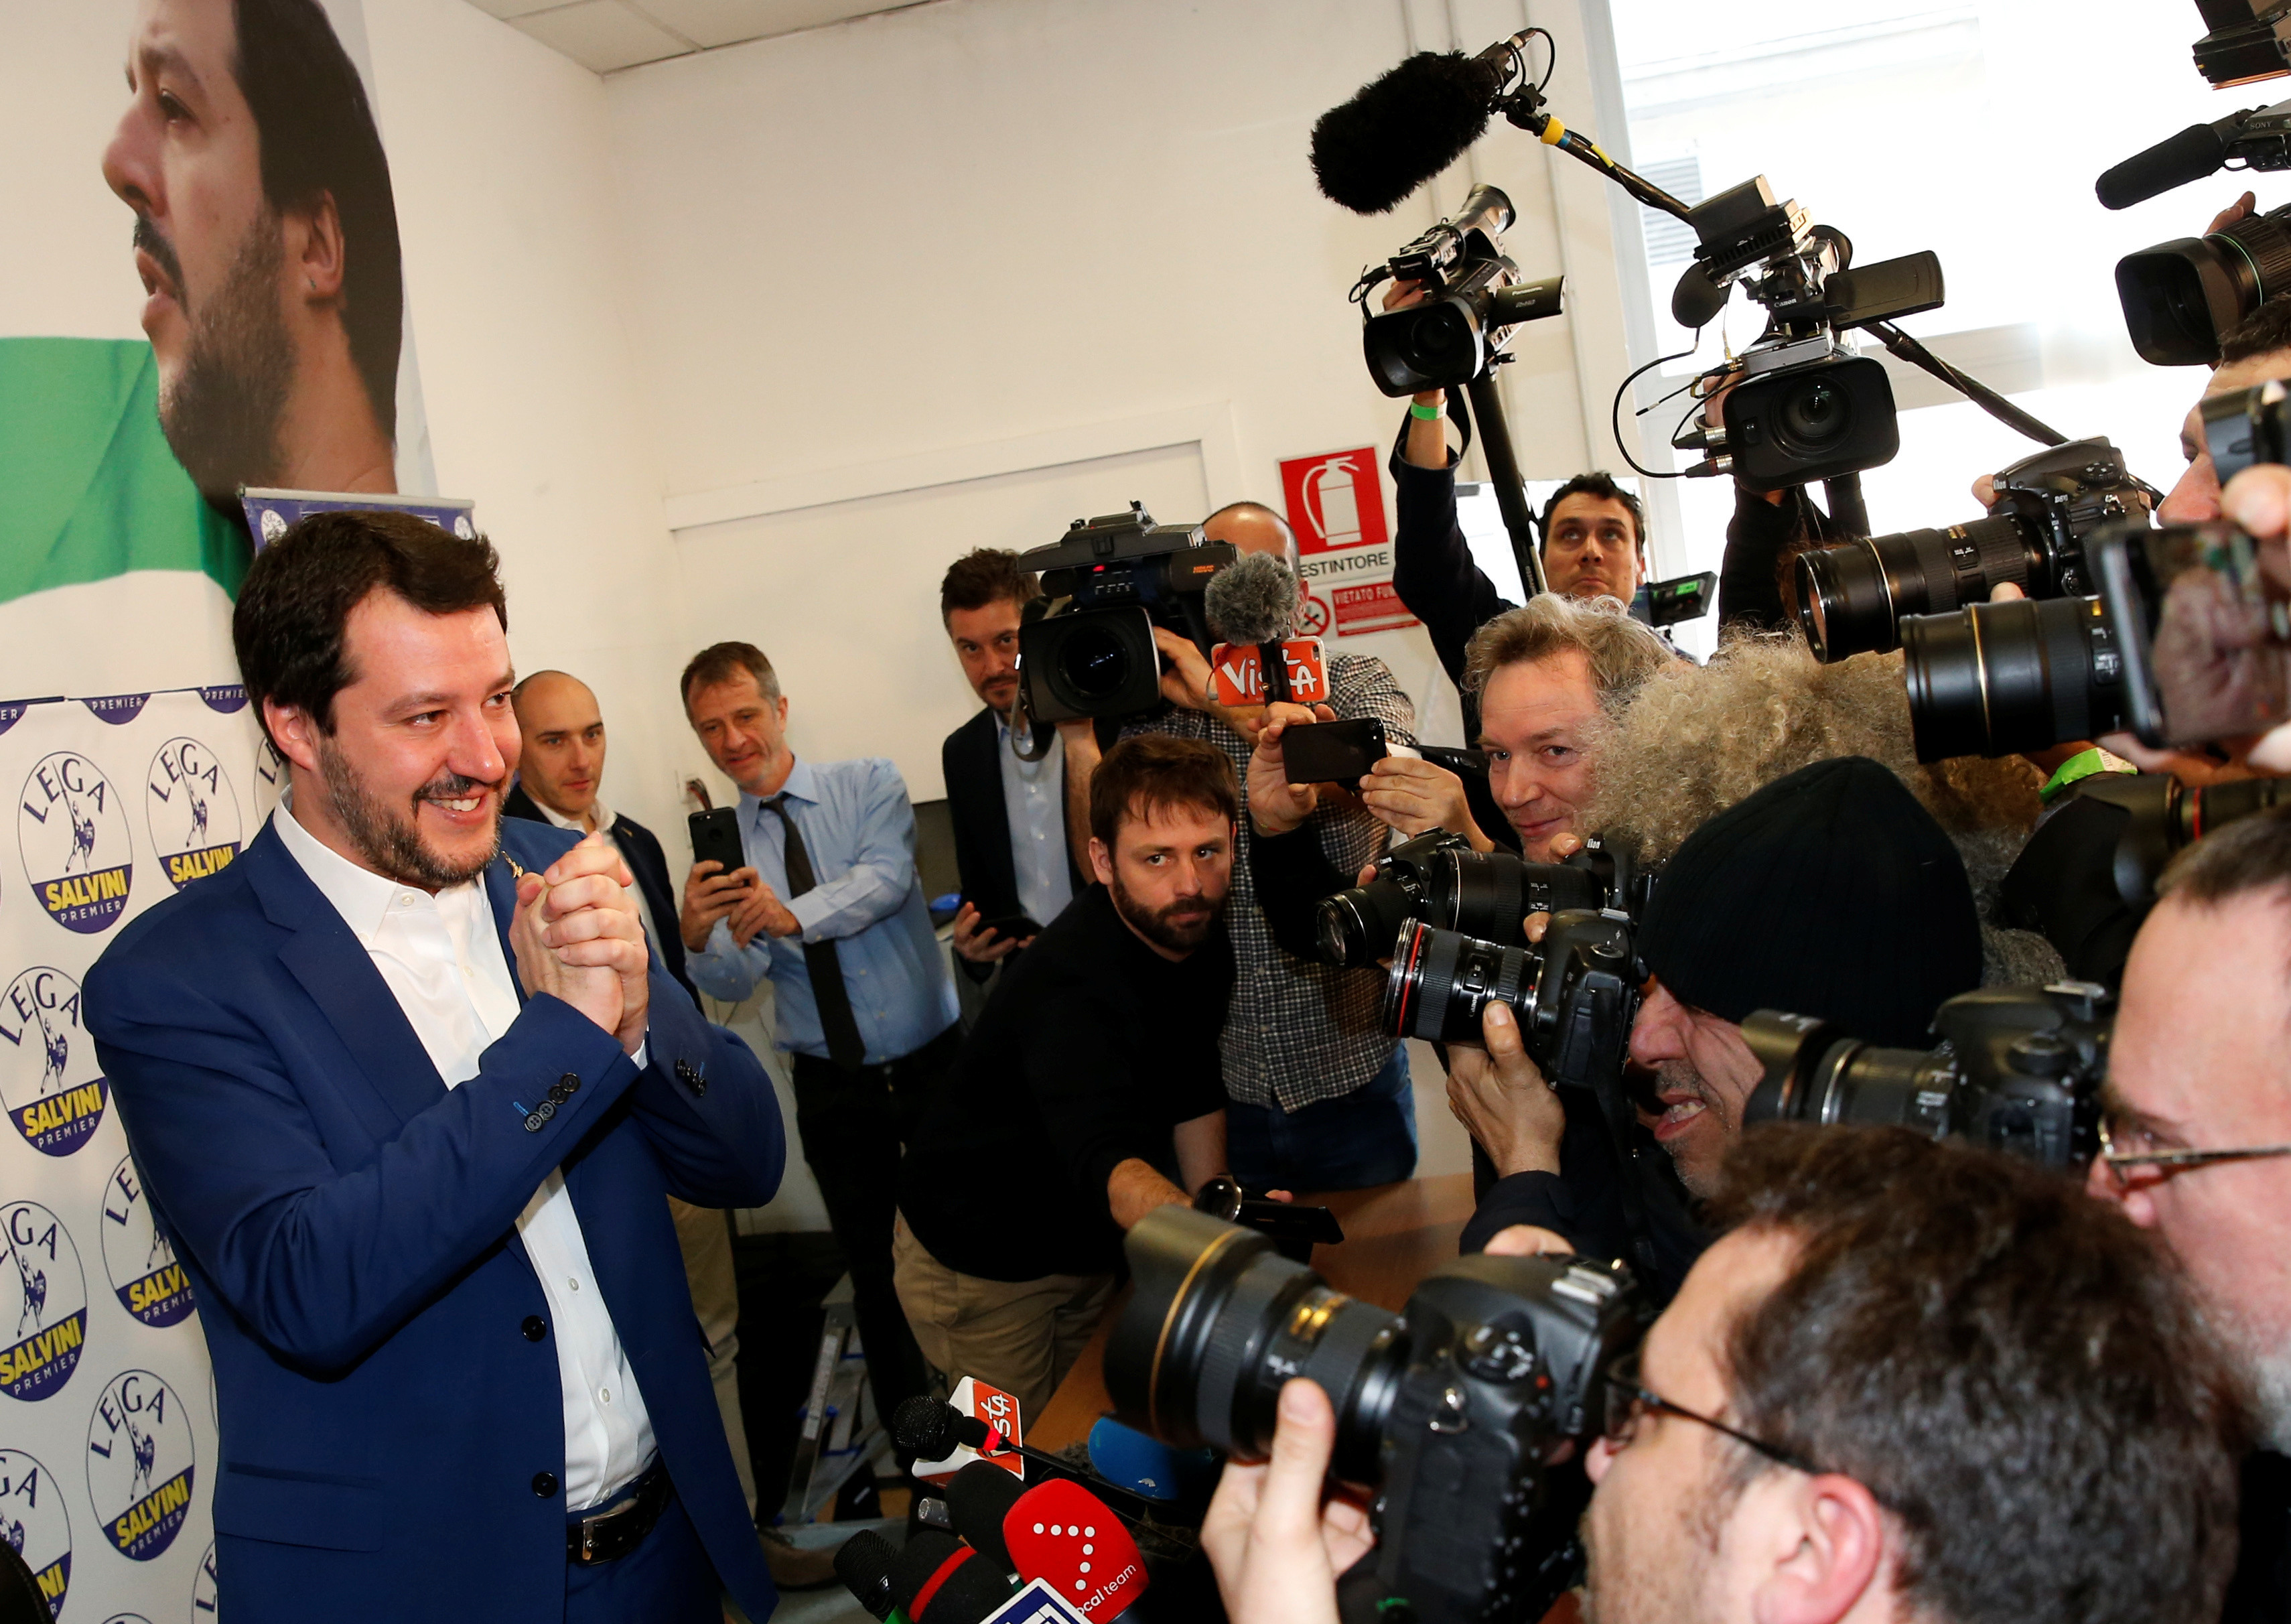 Matteo Salvini, leader of the League, after the election.